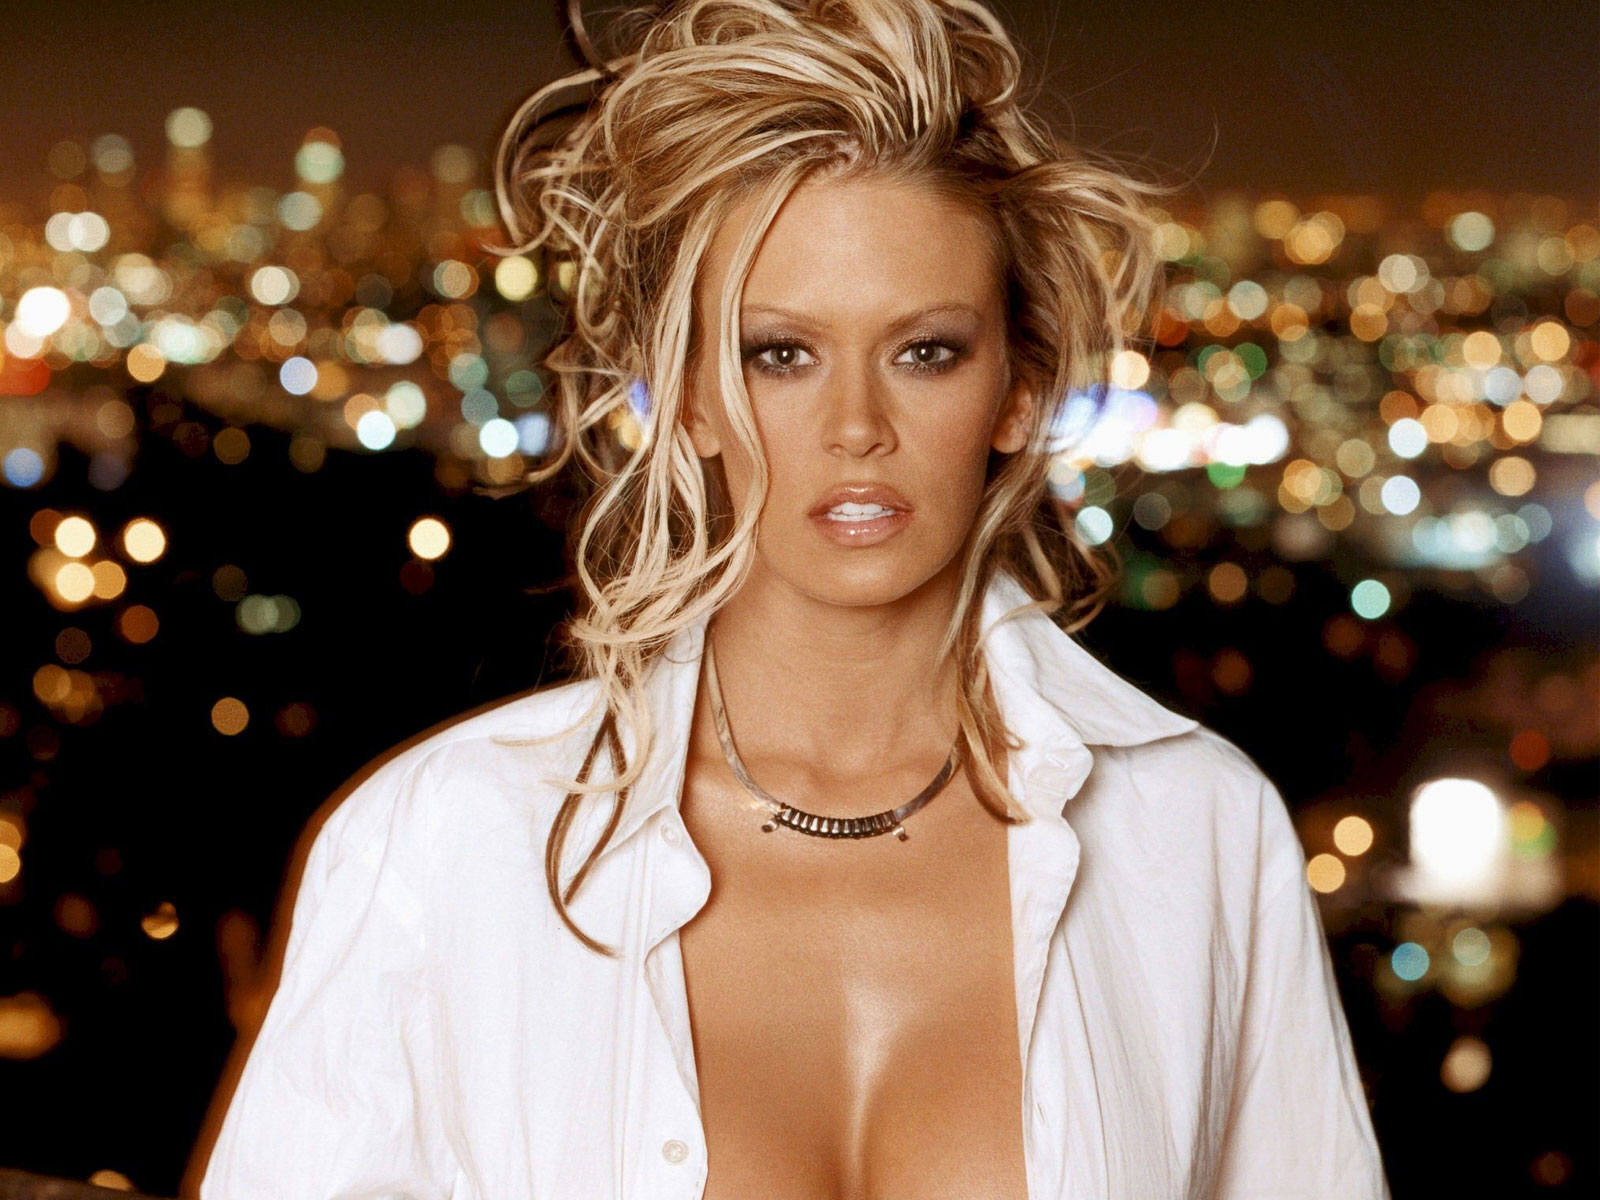 Jenna Jameson Profile And Pictures-Wallpapers